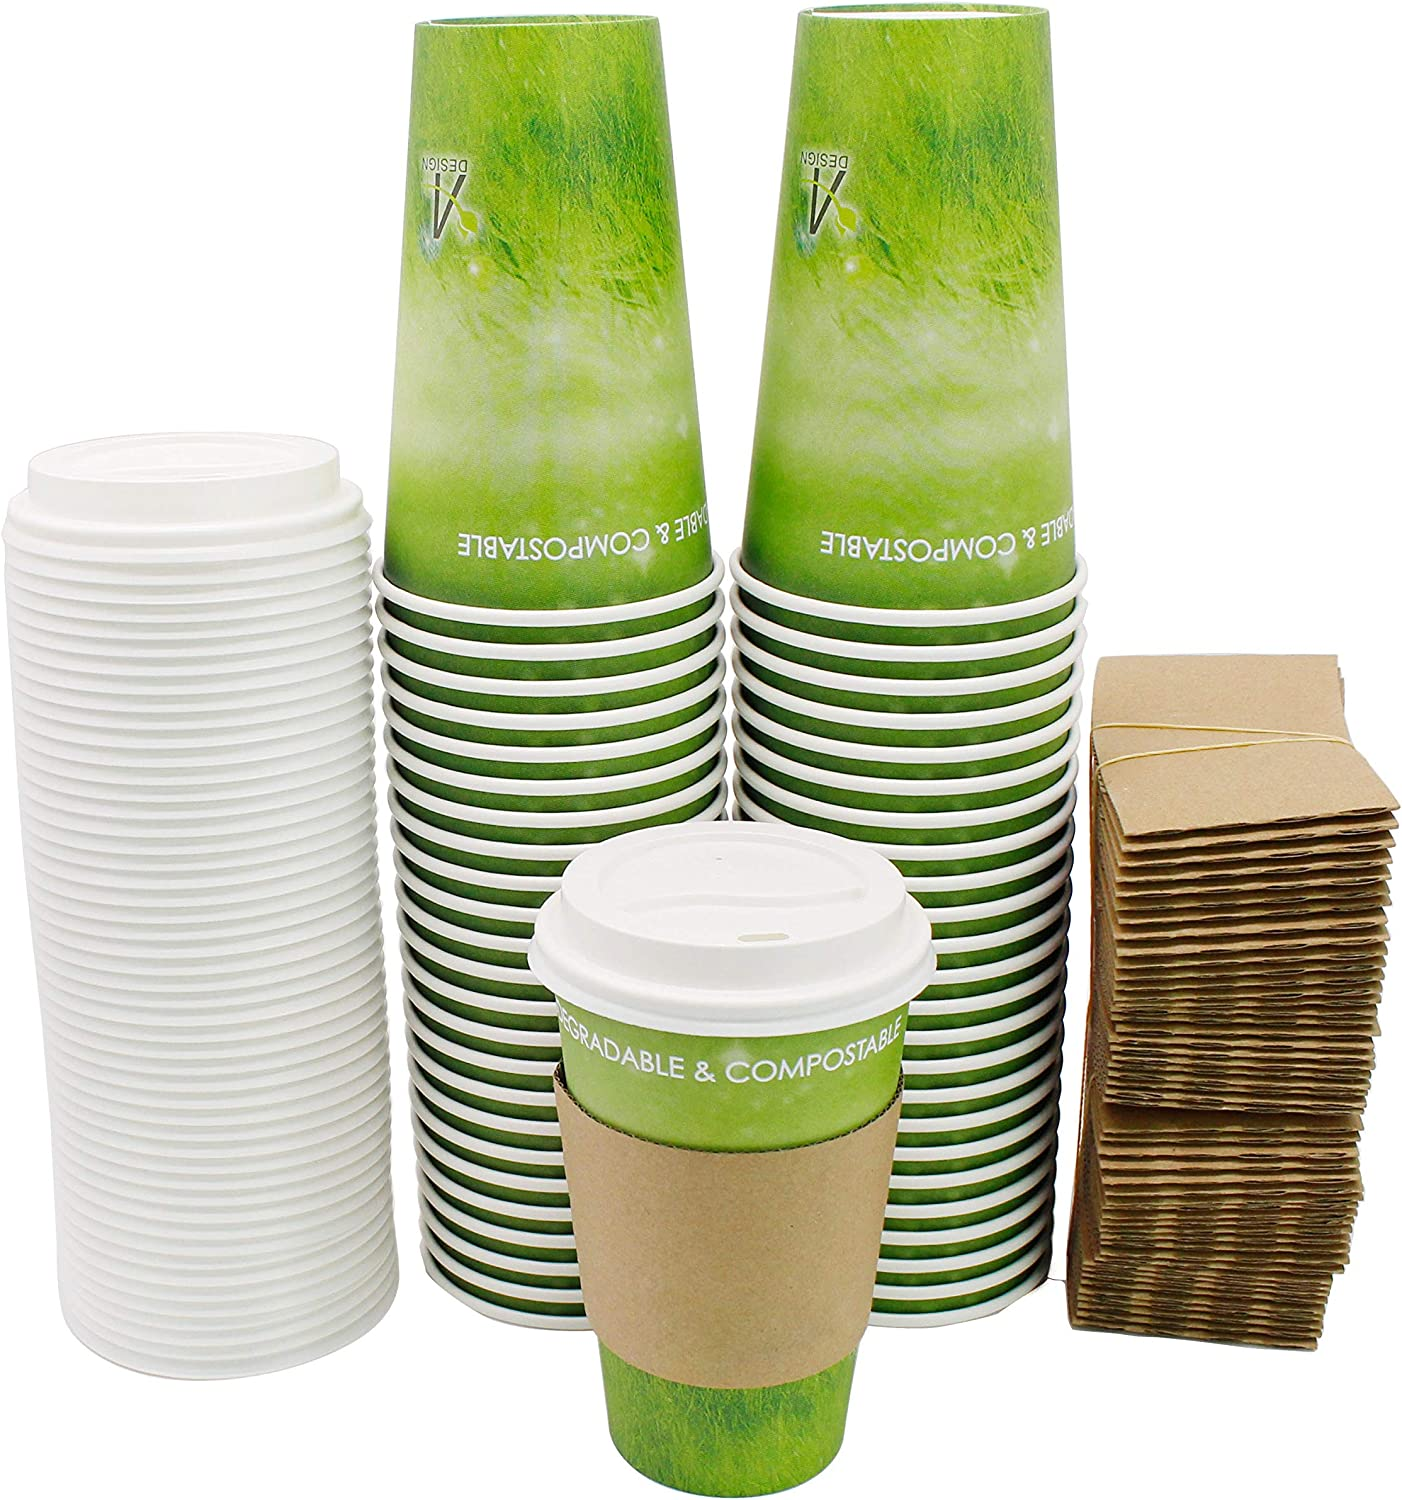 Special Green Grass Design Paper Hot Coffee Cups with Cappuccino Lids and Protective Corrugated Cup Sleeves, Eco-friendly,100% Blodegradable&Compostable 50 Count (Green grass, 16 oz)